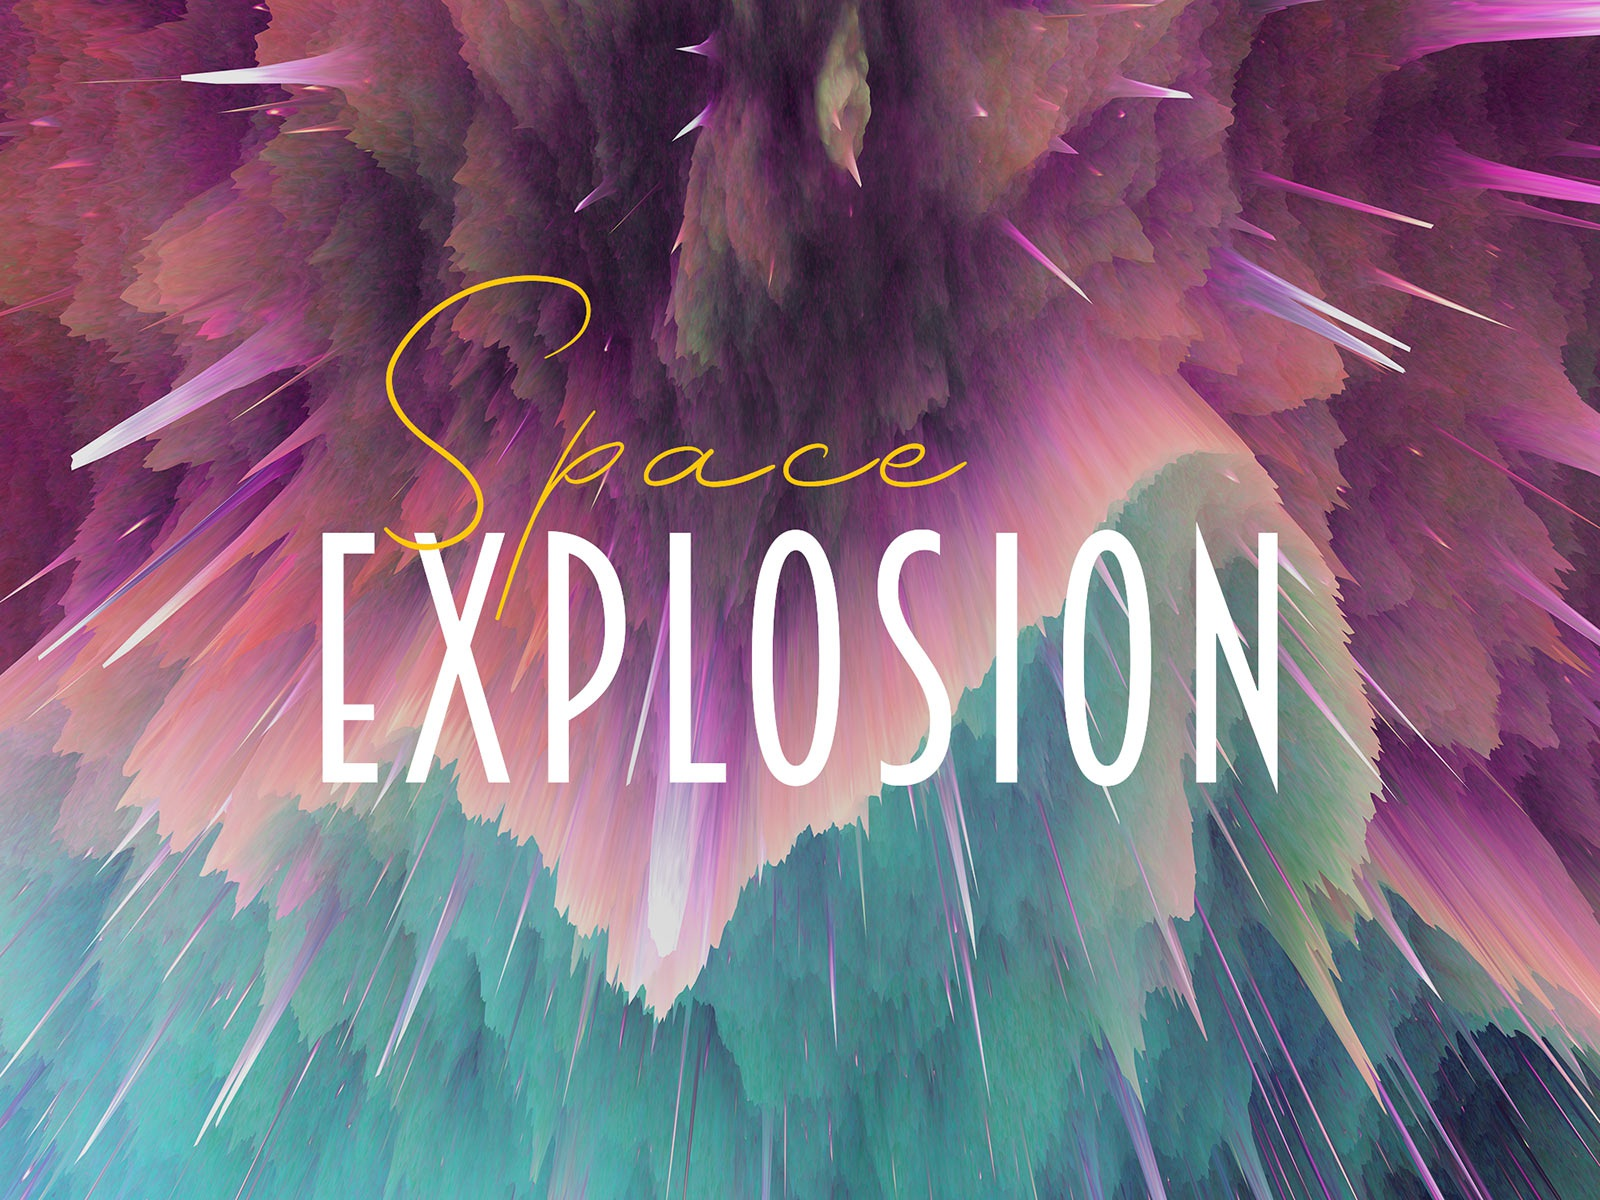 Space Explosion Backgrounds Visual Effect Futuristic Background Texture Pixelbuddha